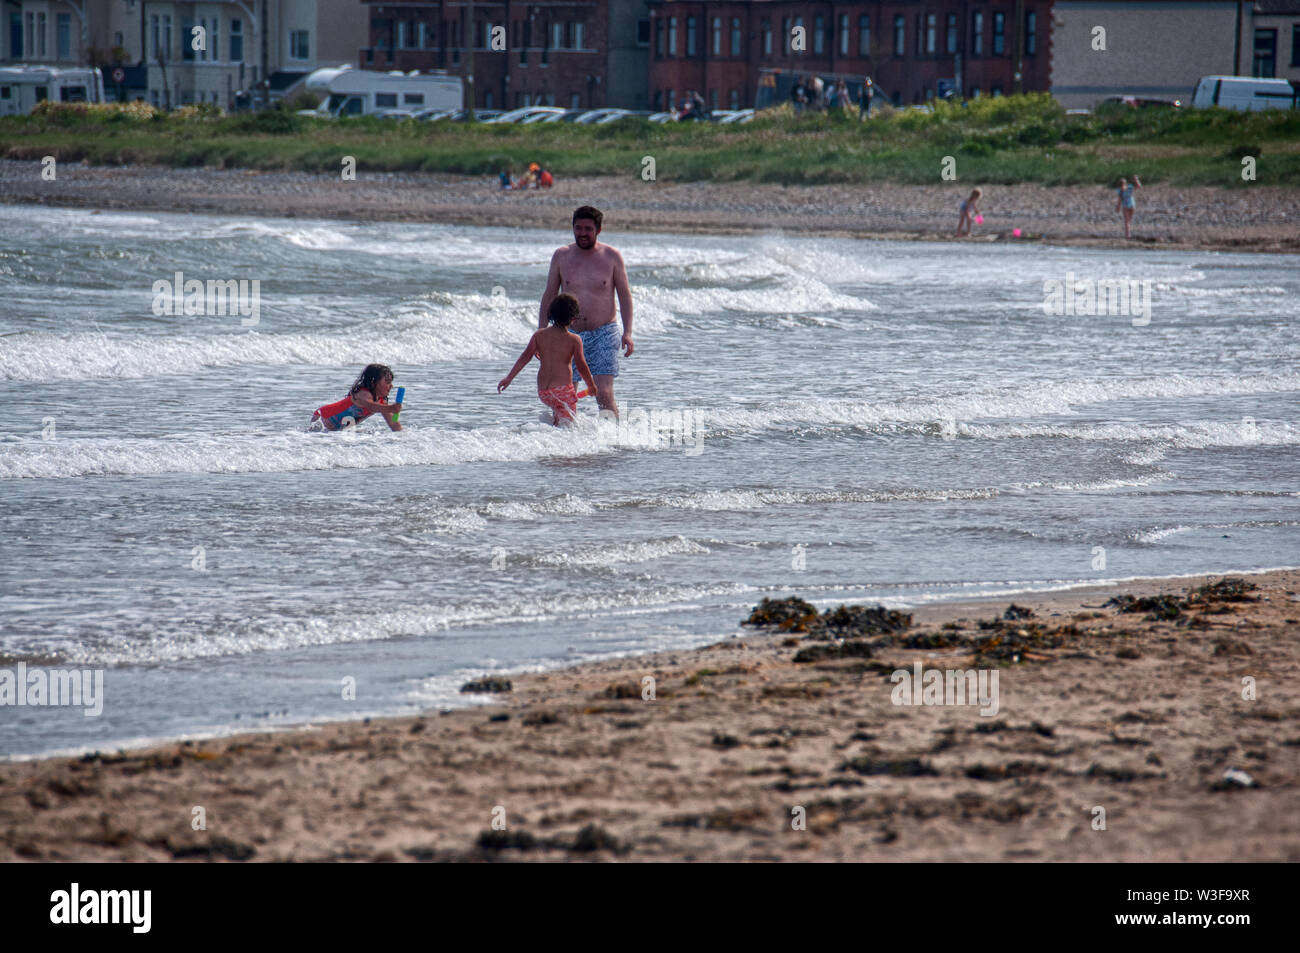 Paddling in the Irish sea from Skerries beach, Co. Dublin - Stock Image